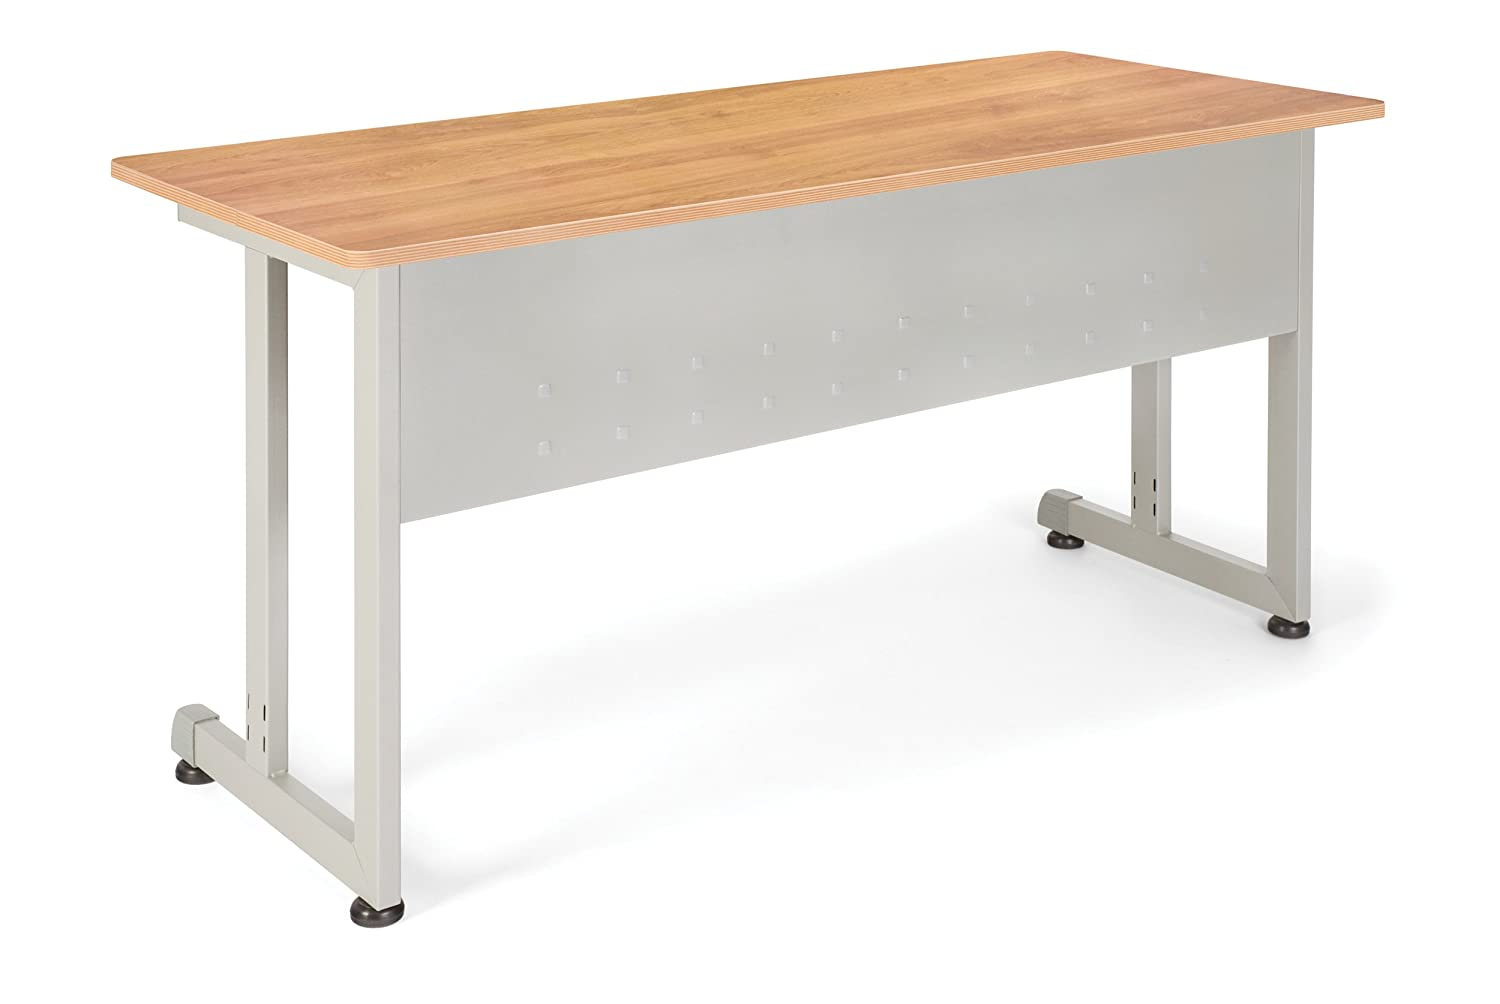 Amazoncom Ofm 55142 Mpl Training Table 24 By 55 Inch Maple